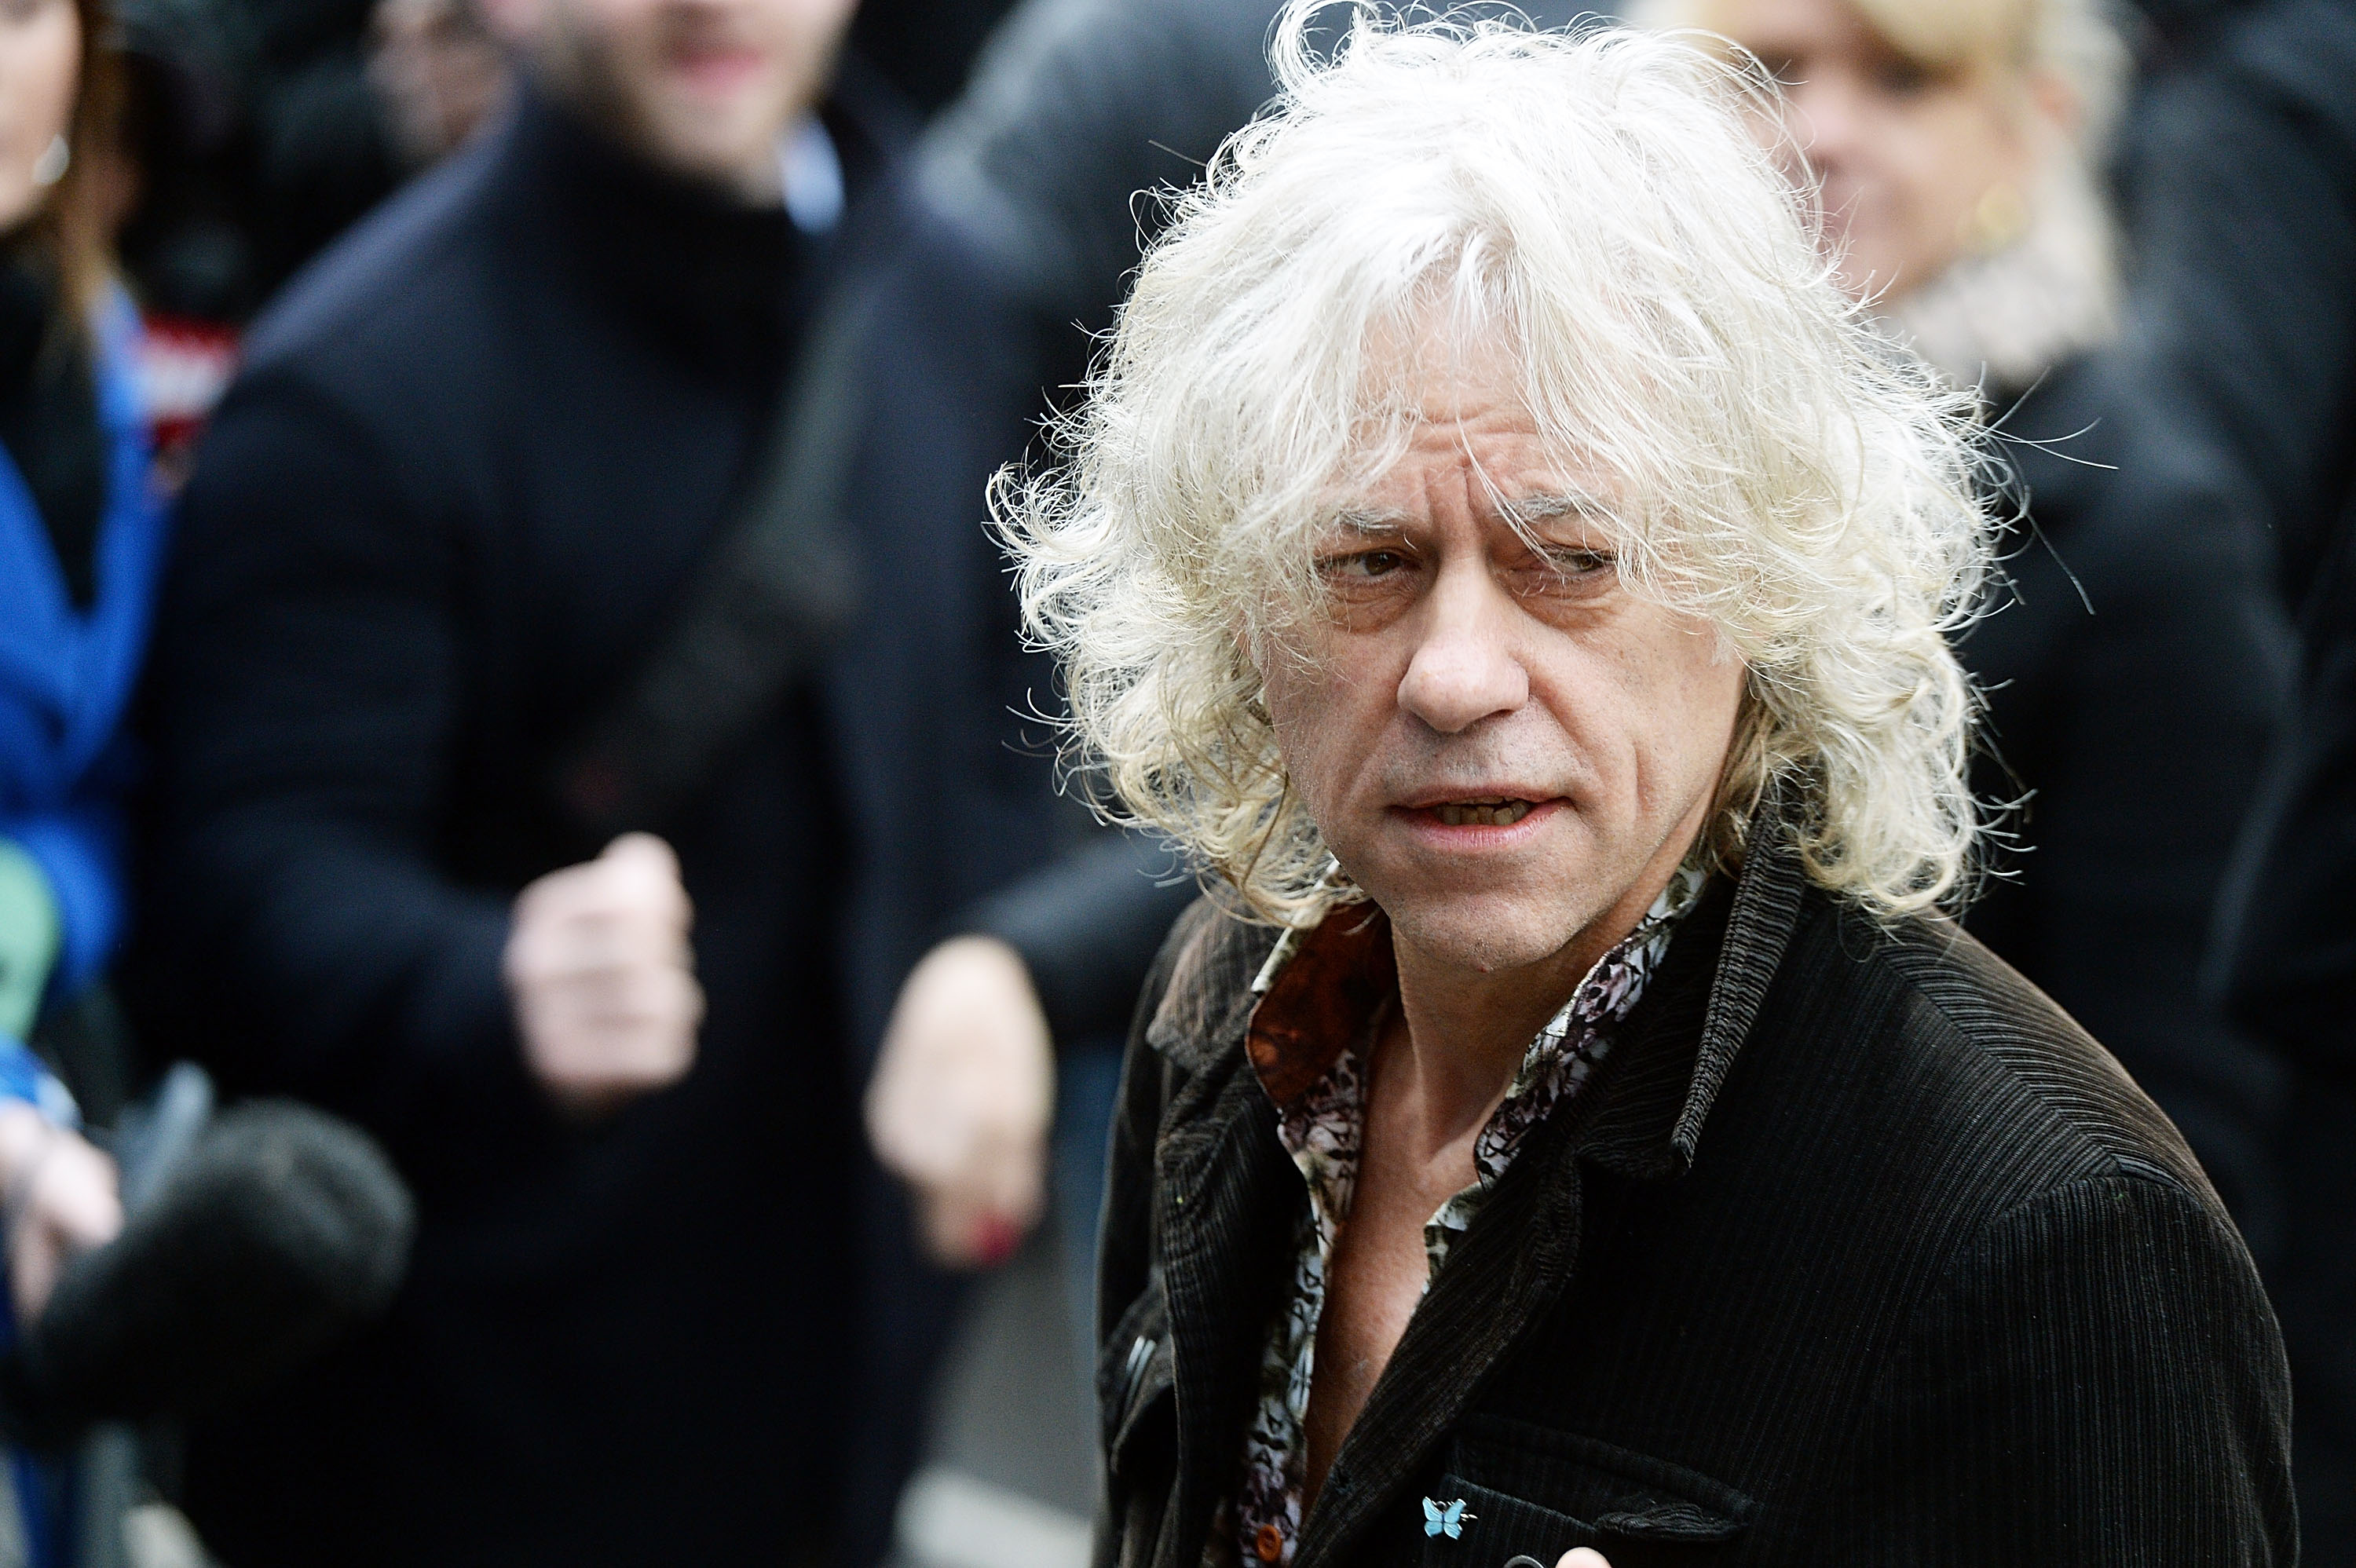 LONDON, ENGLAND - NOVEMBER 15:  Bob Geldof attends to record the Band Aid 30 single on November 15, 2014 in London, England.